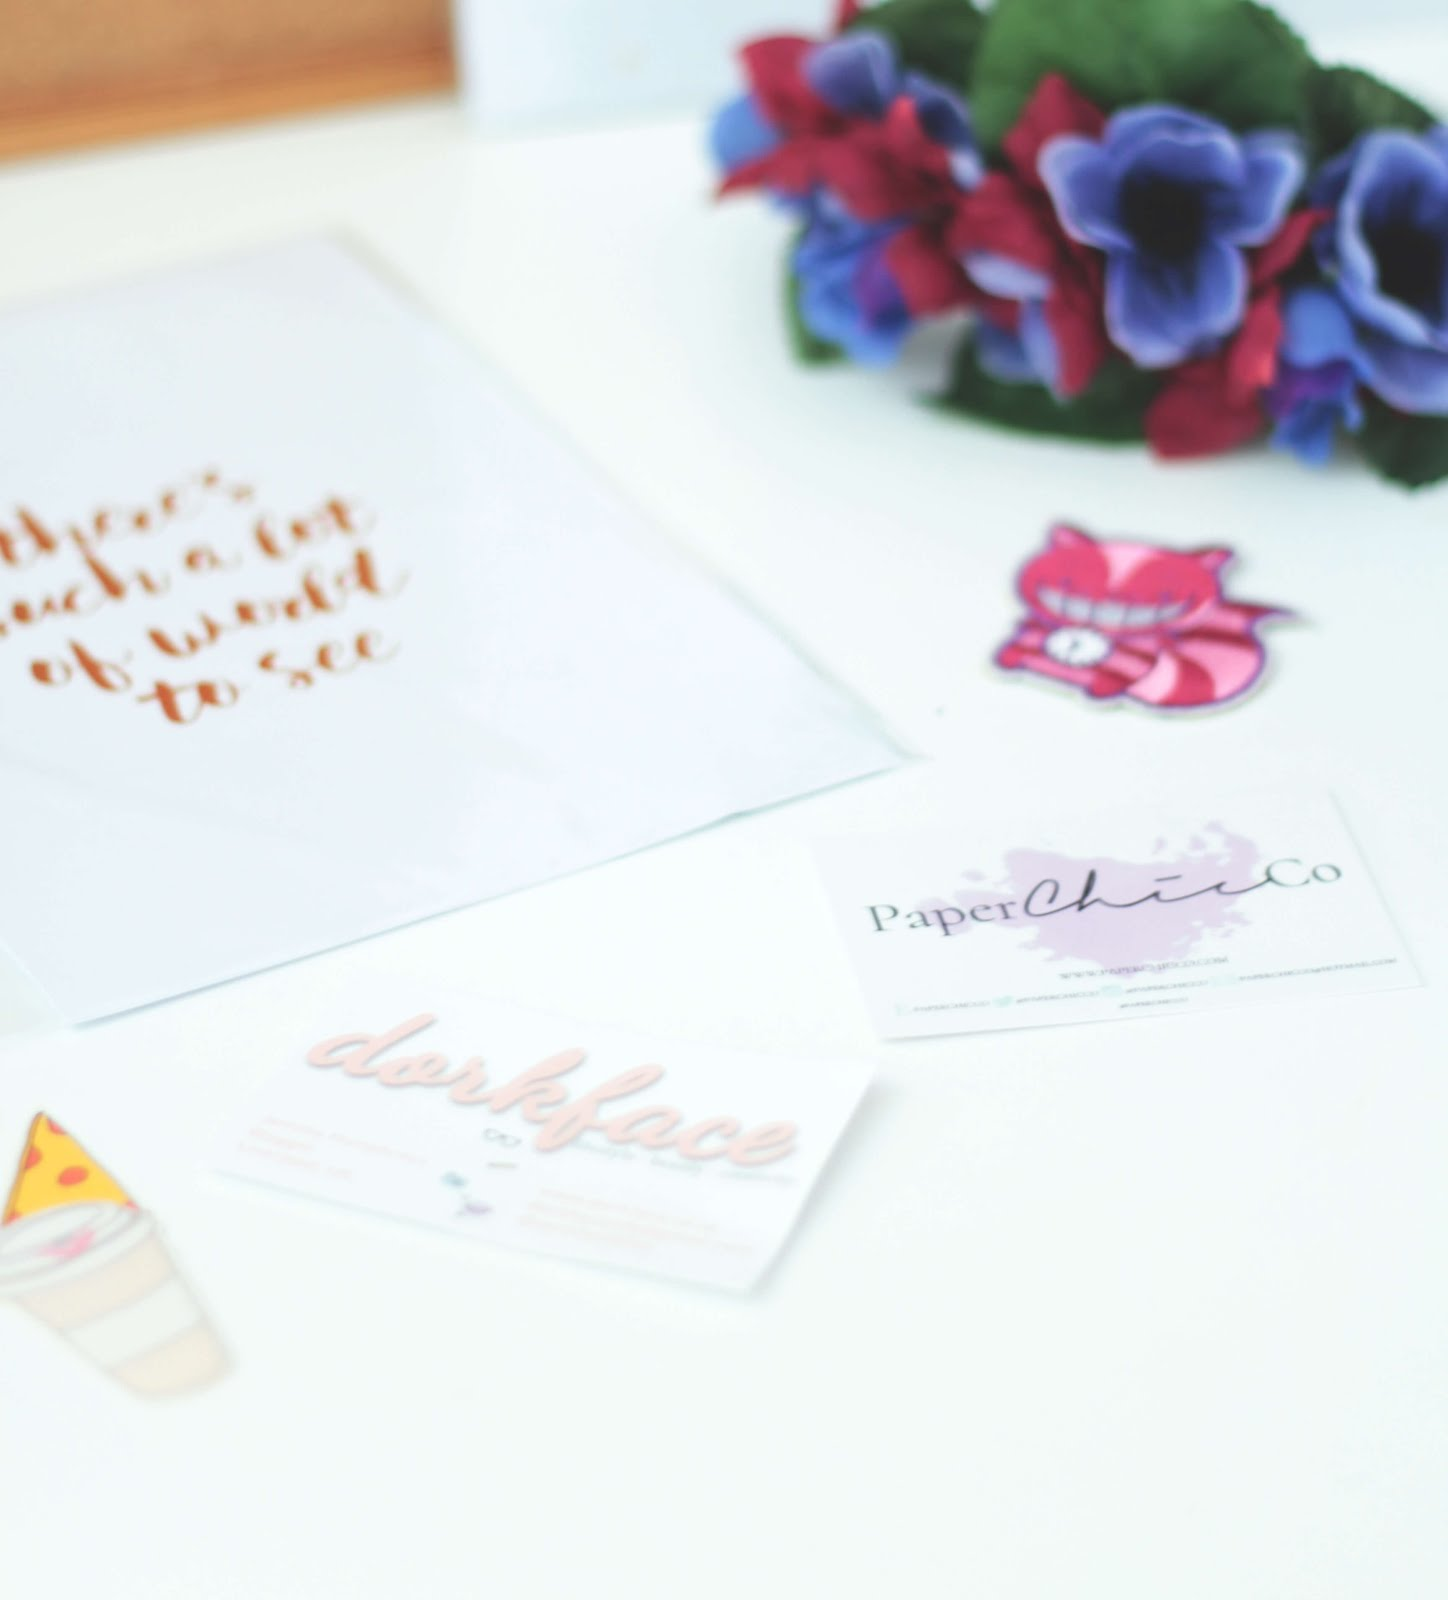 blogger favourite recommended indie brands small businesses